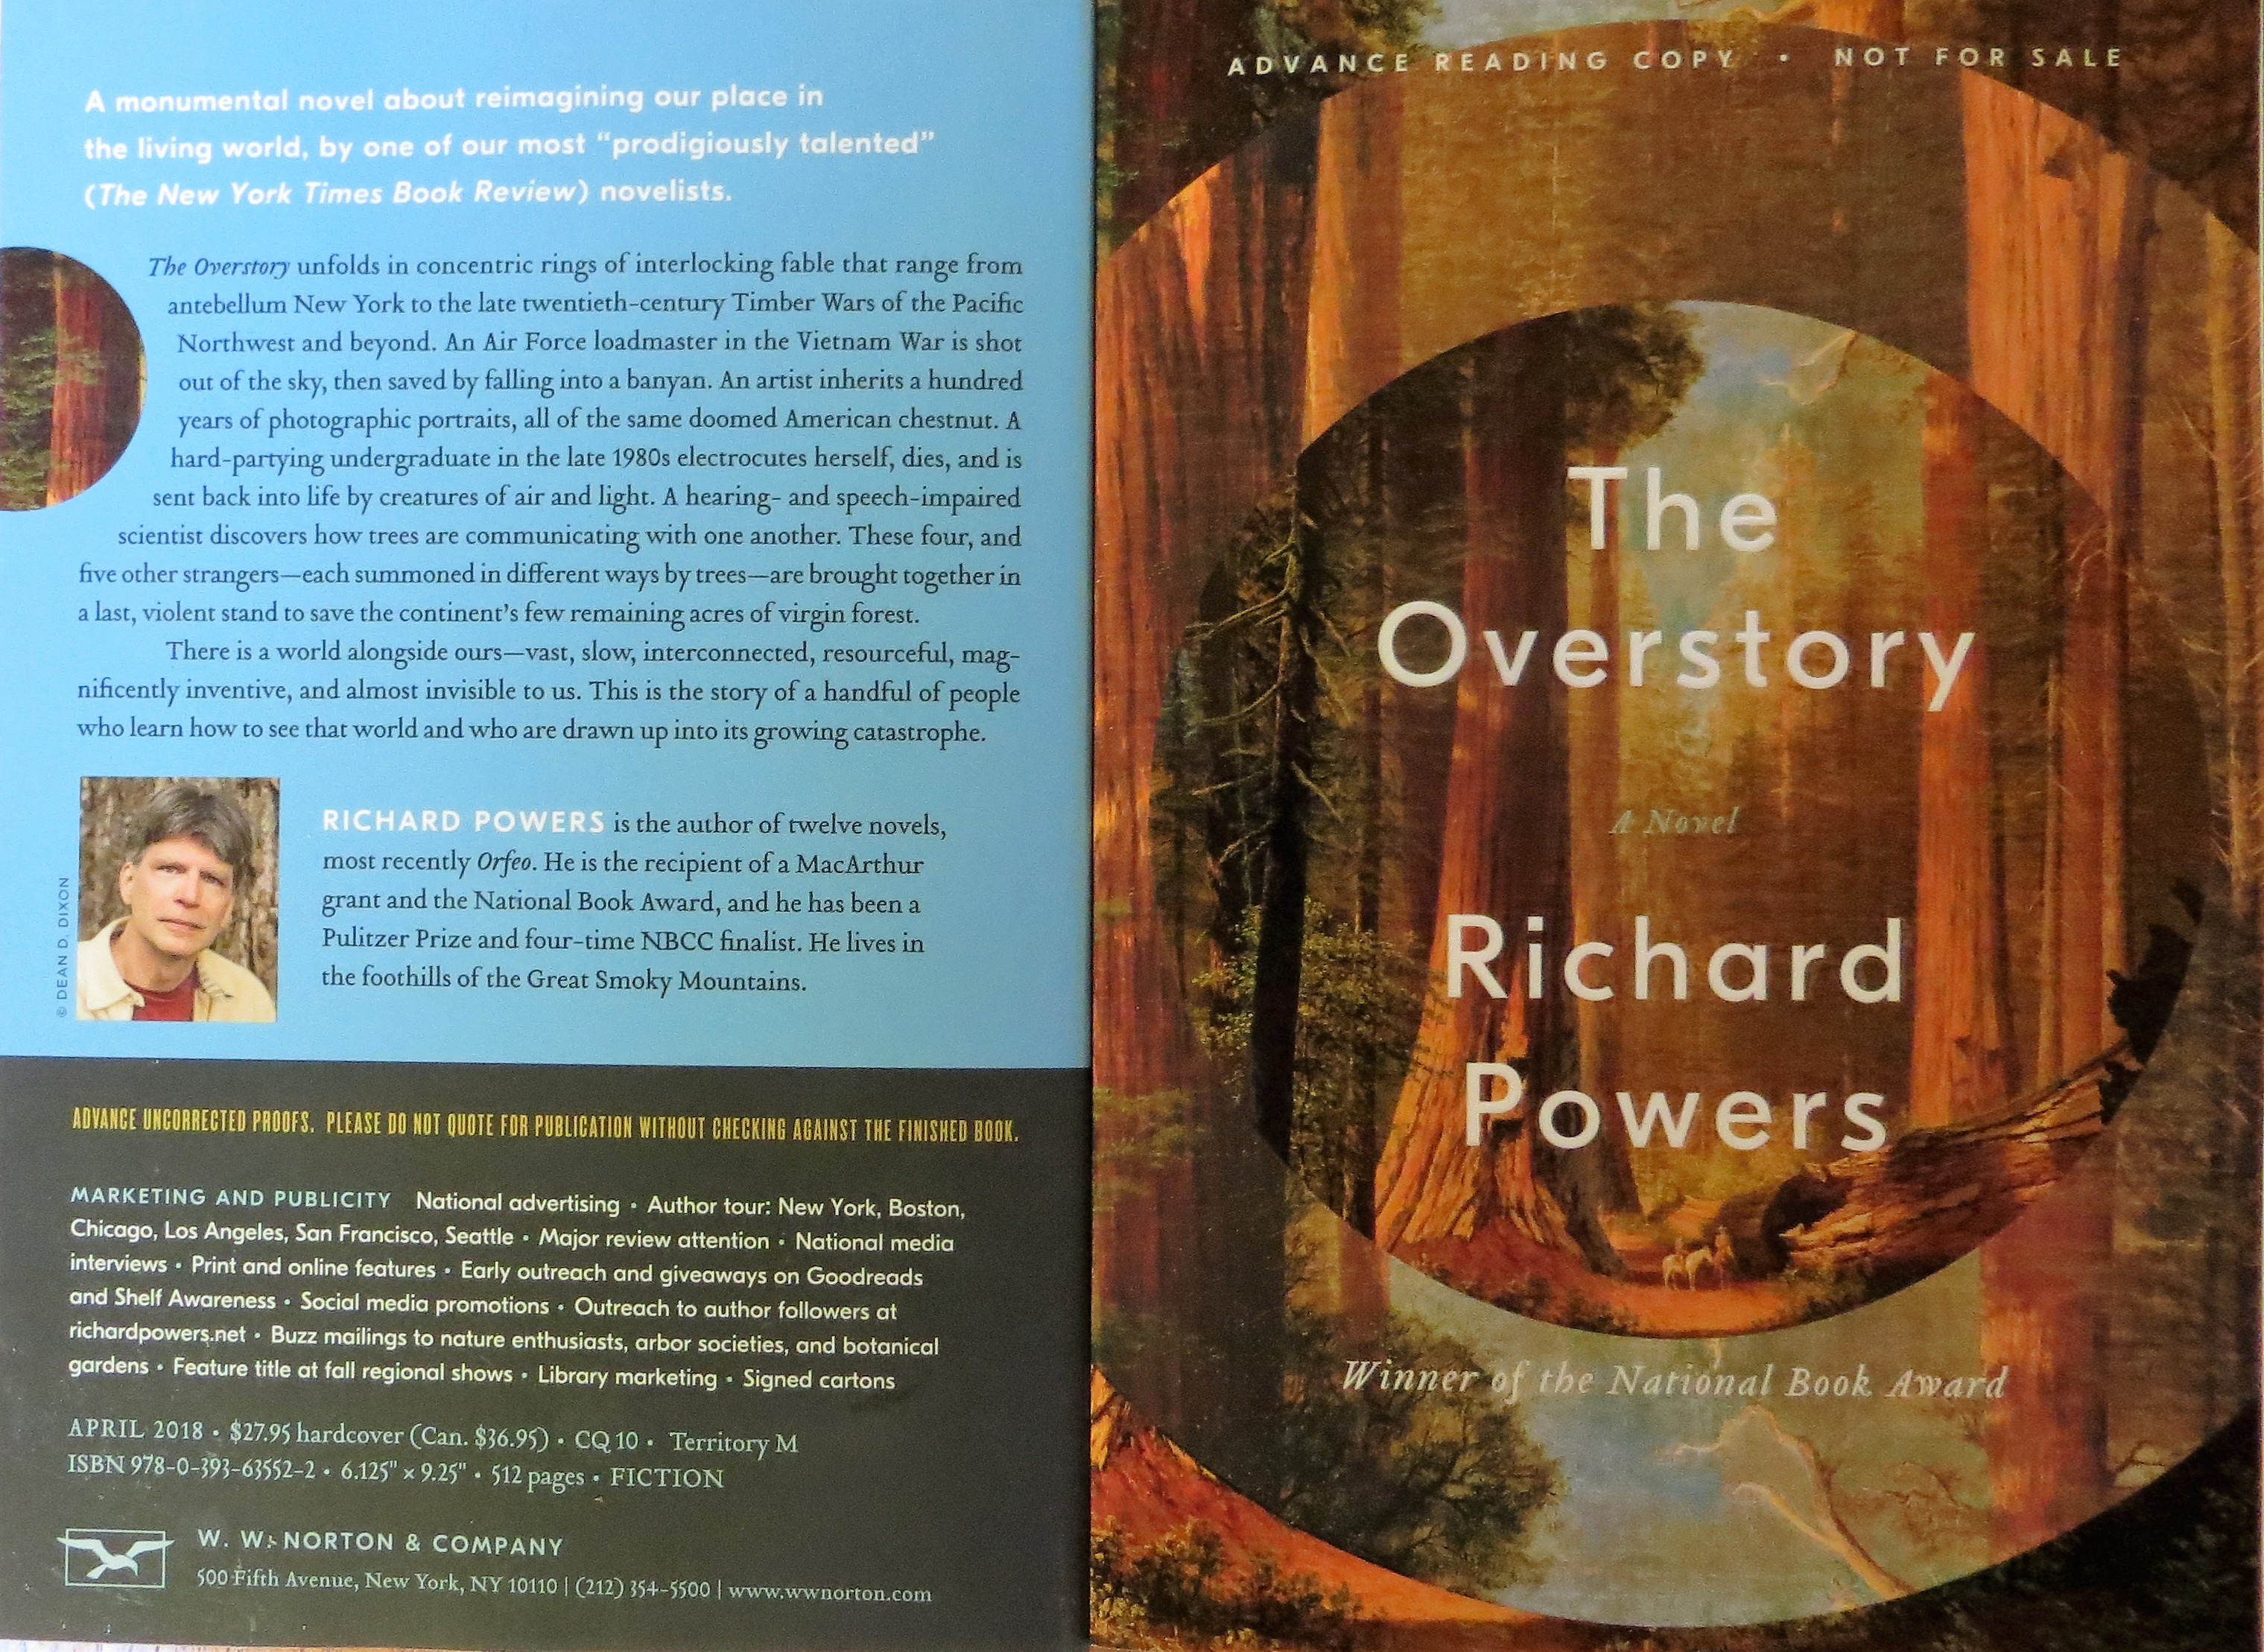 The Overstory 2018 By Richard Powers The Power Of Trees Cg Fewston